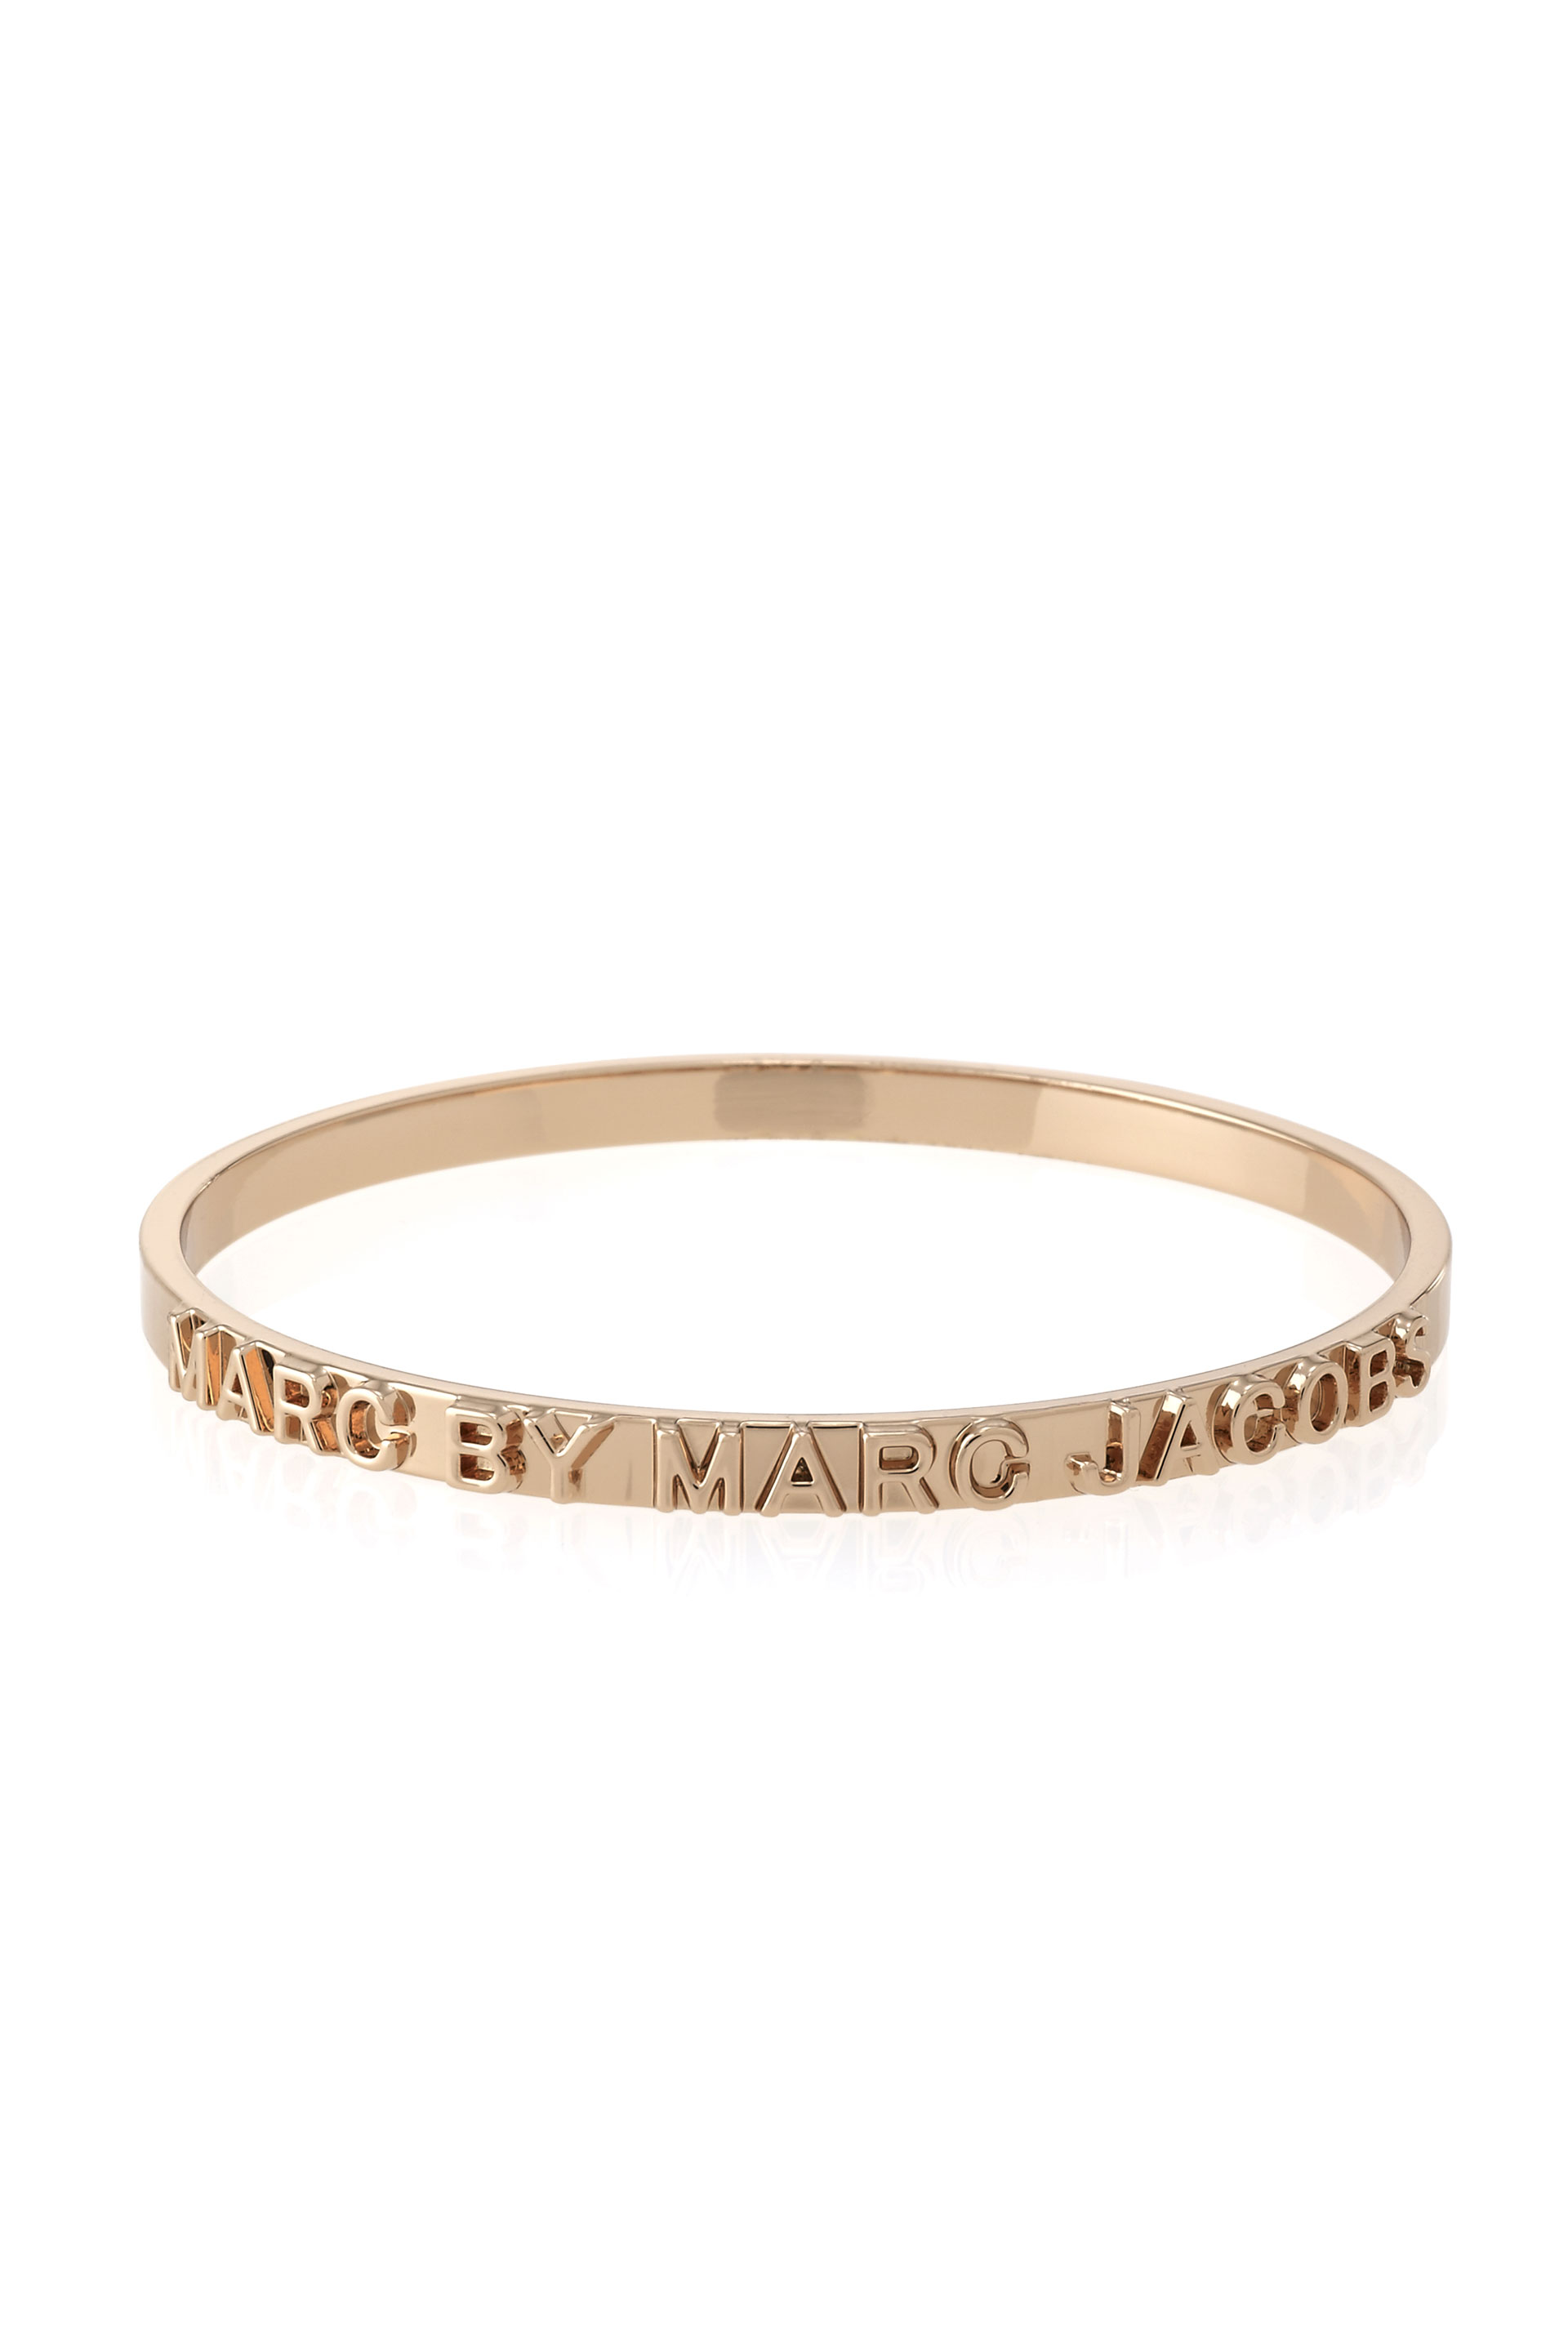 Letterpress Bangle - Marc by Marc Jacobs - Shop marcjacobs.com - Marc Jacobs